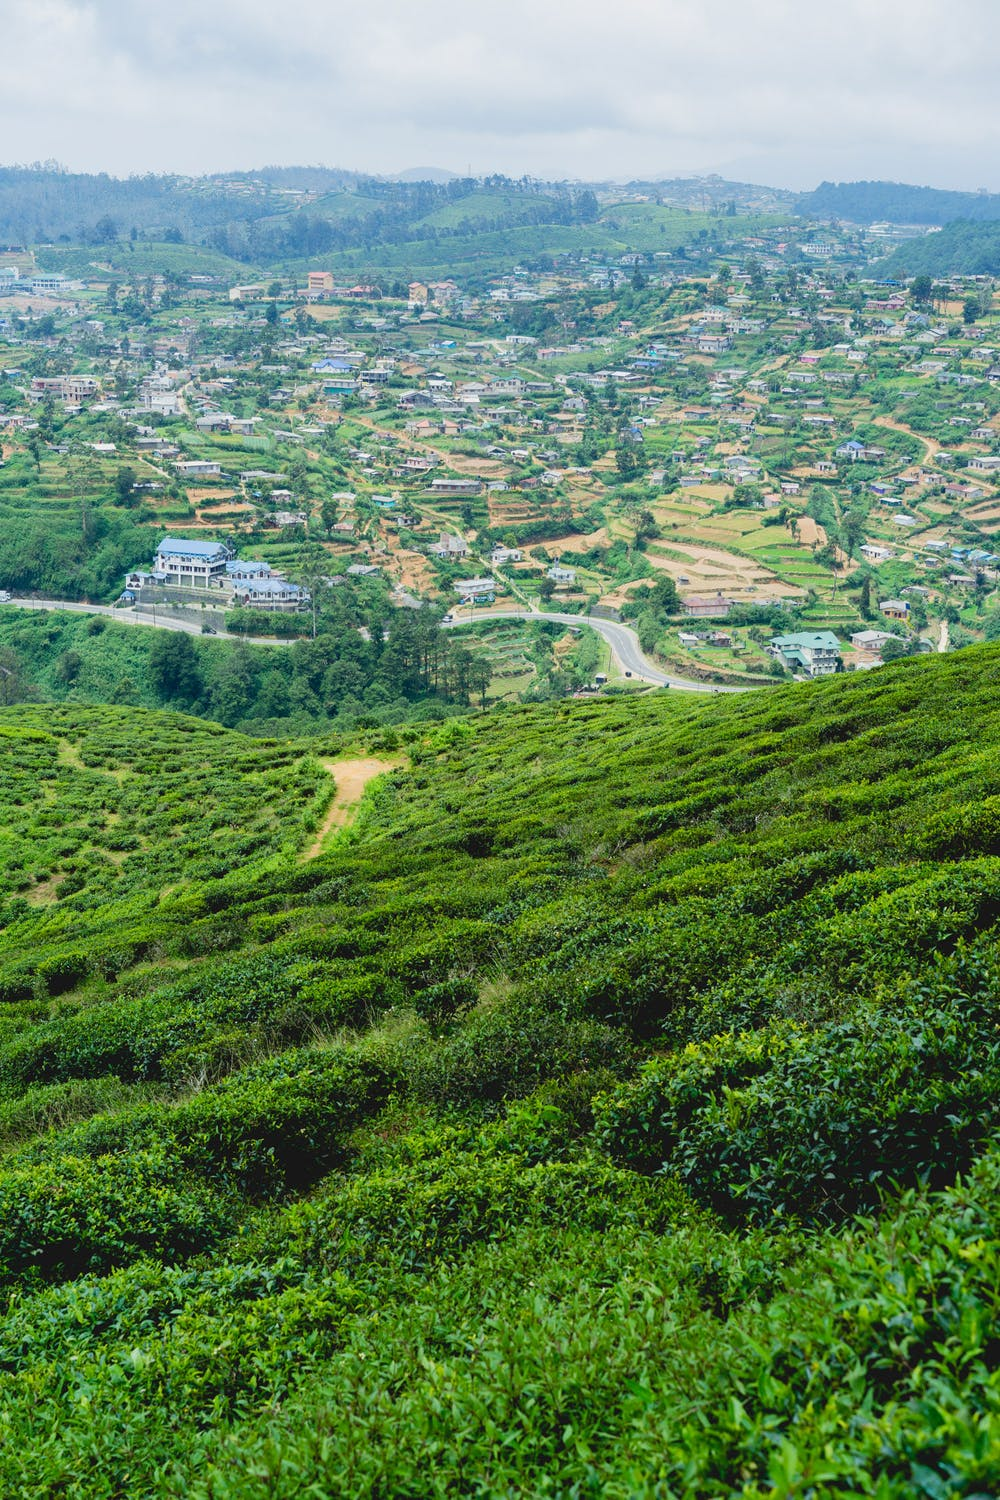 Green hills with a town in the distance in Nuwara Eliya, Sri Lanka